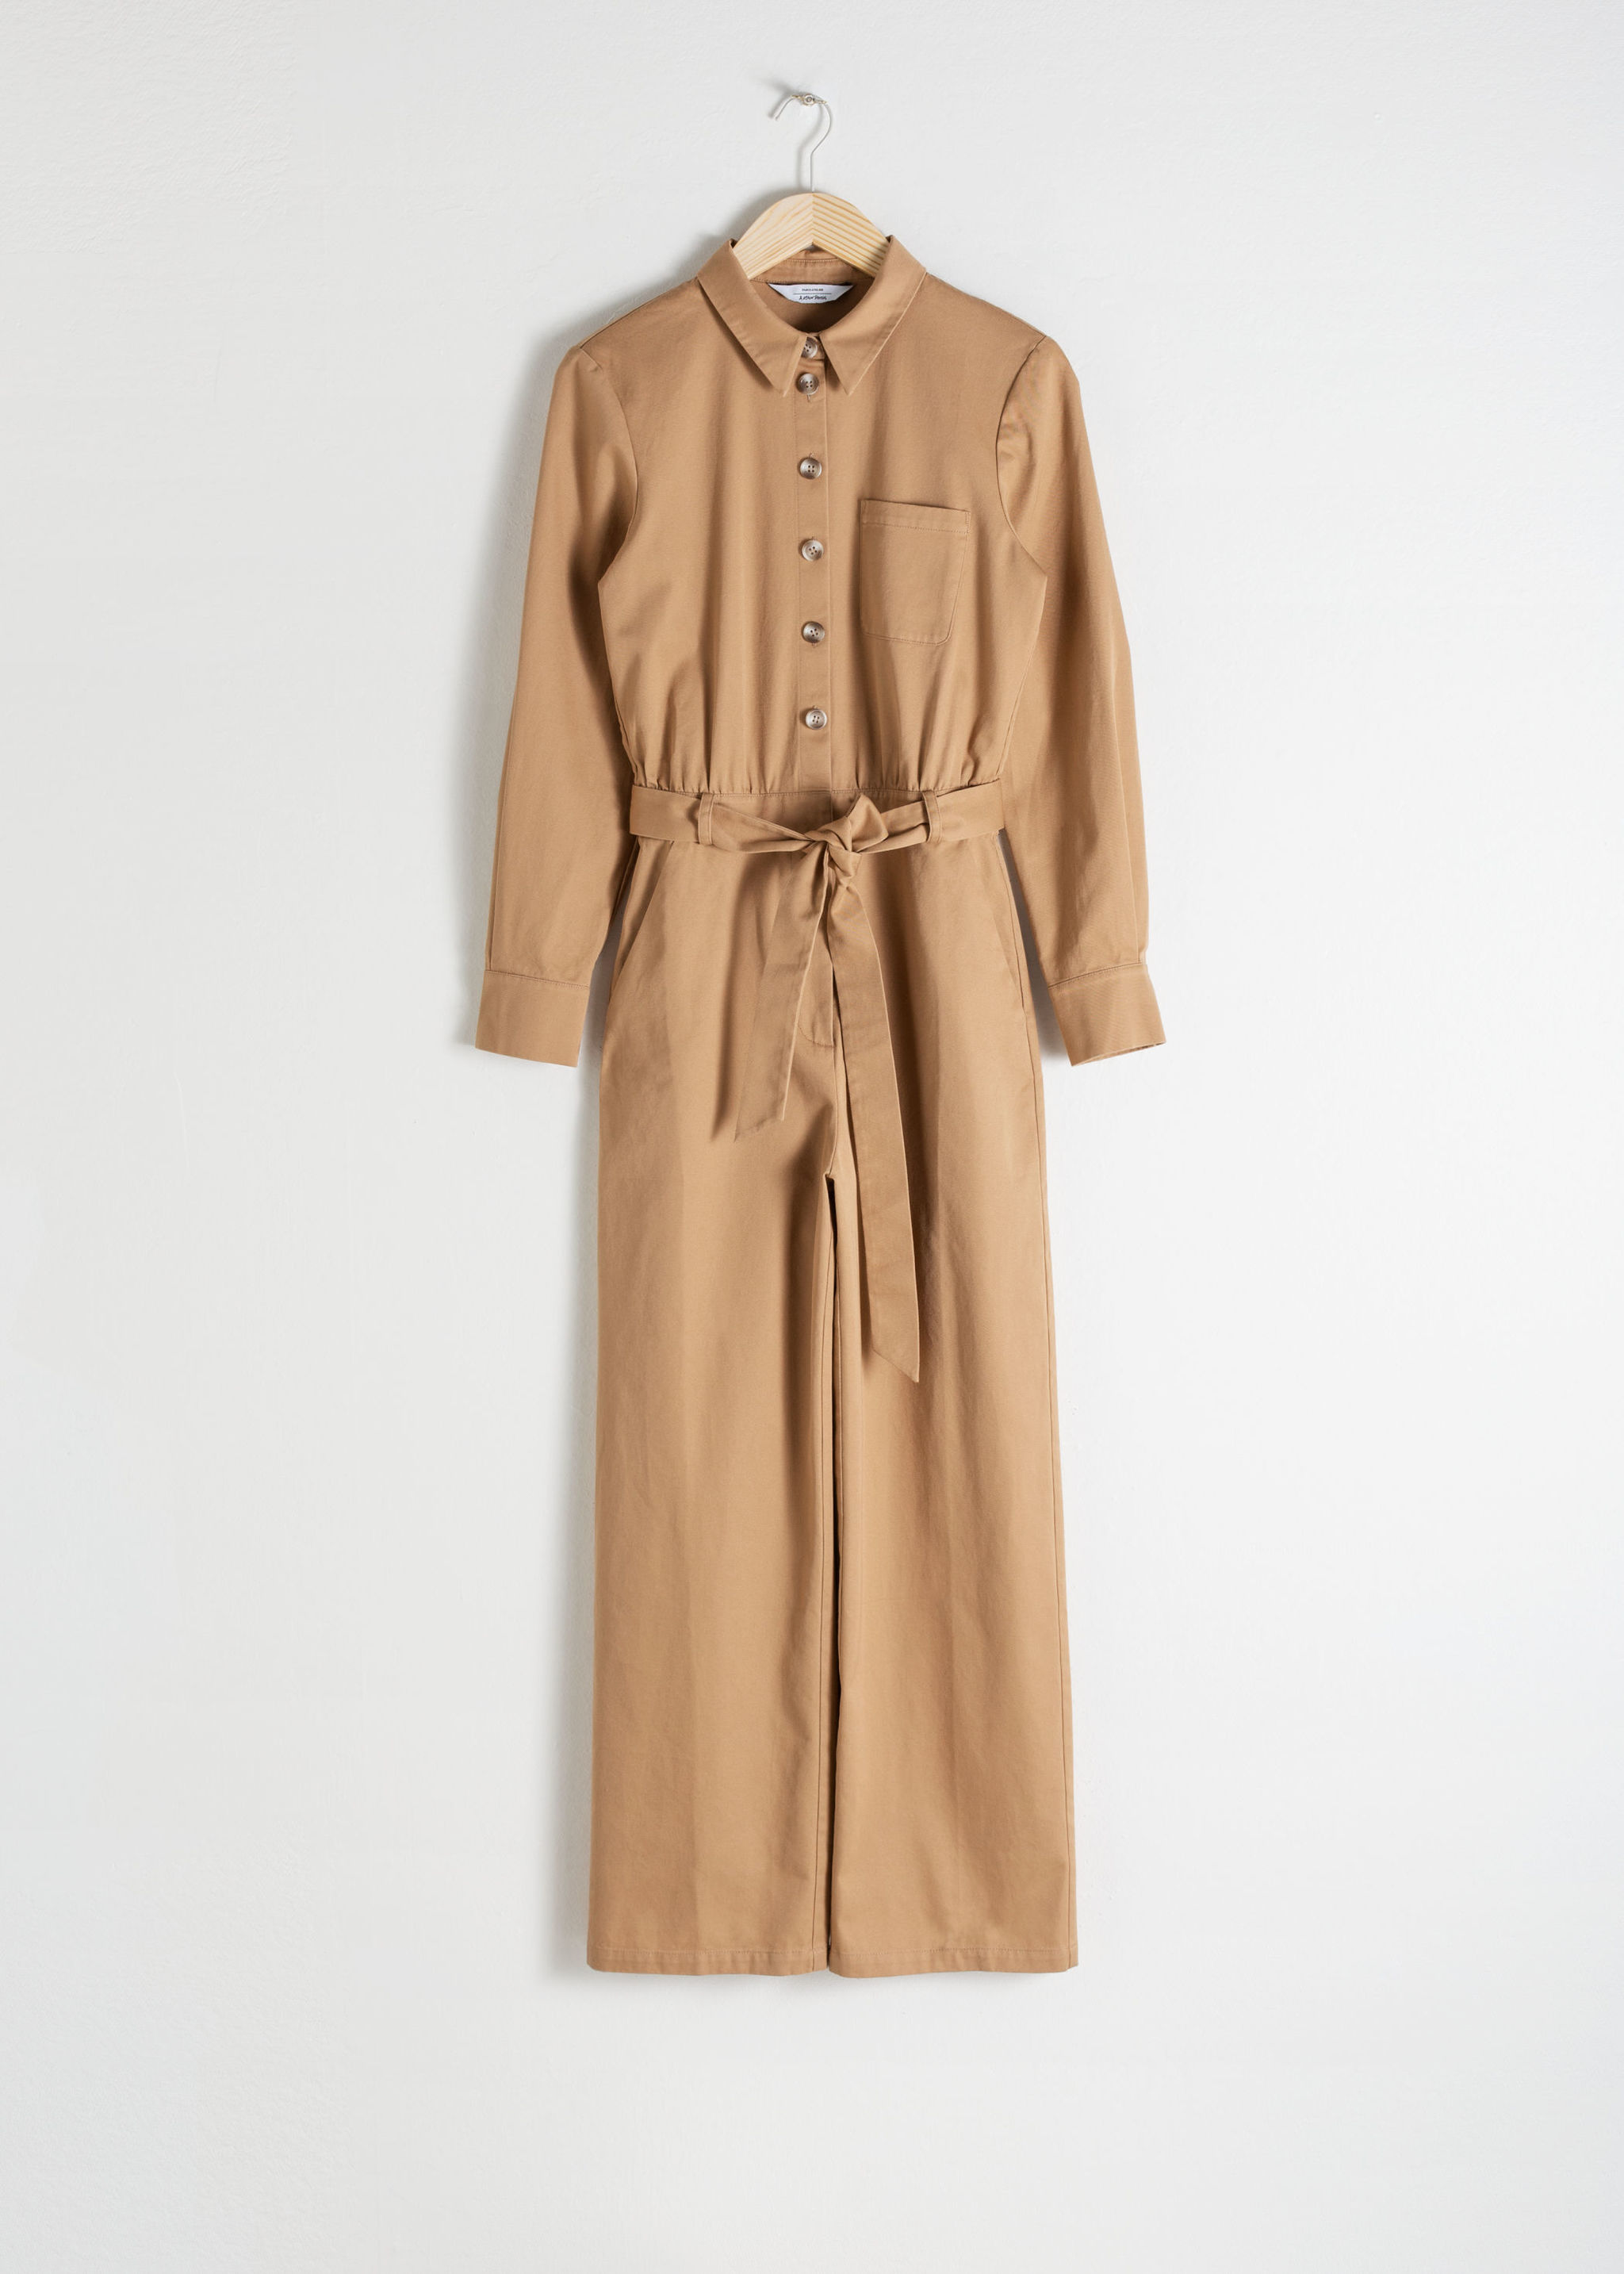 Jumpsuit de & Other Stories (89 euros).